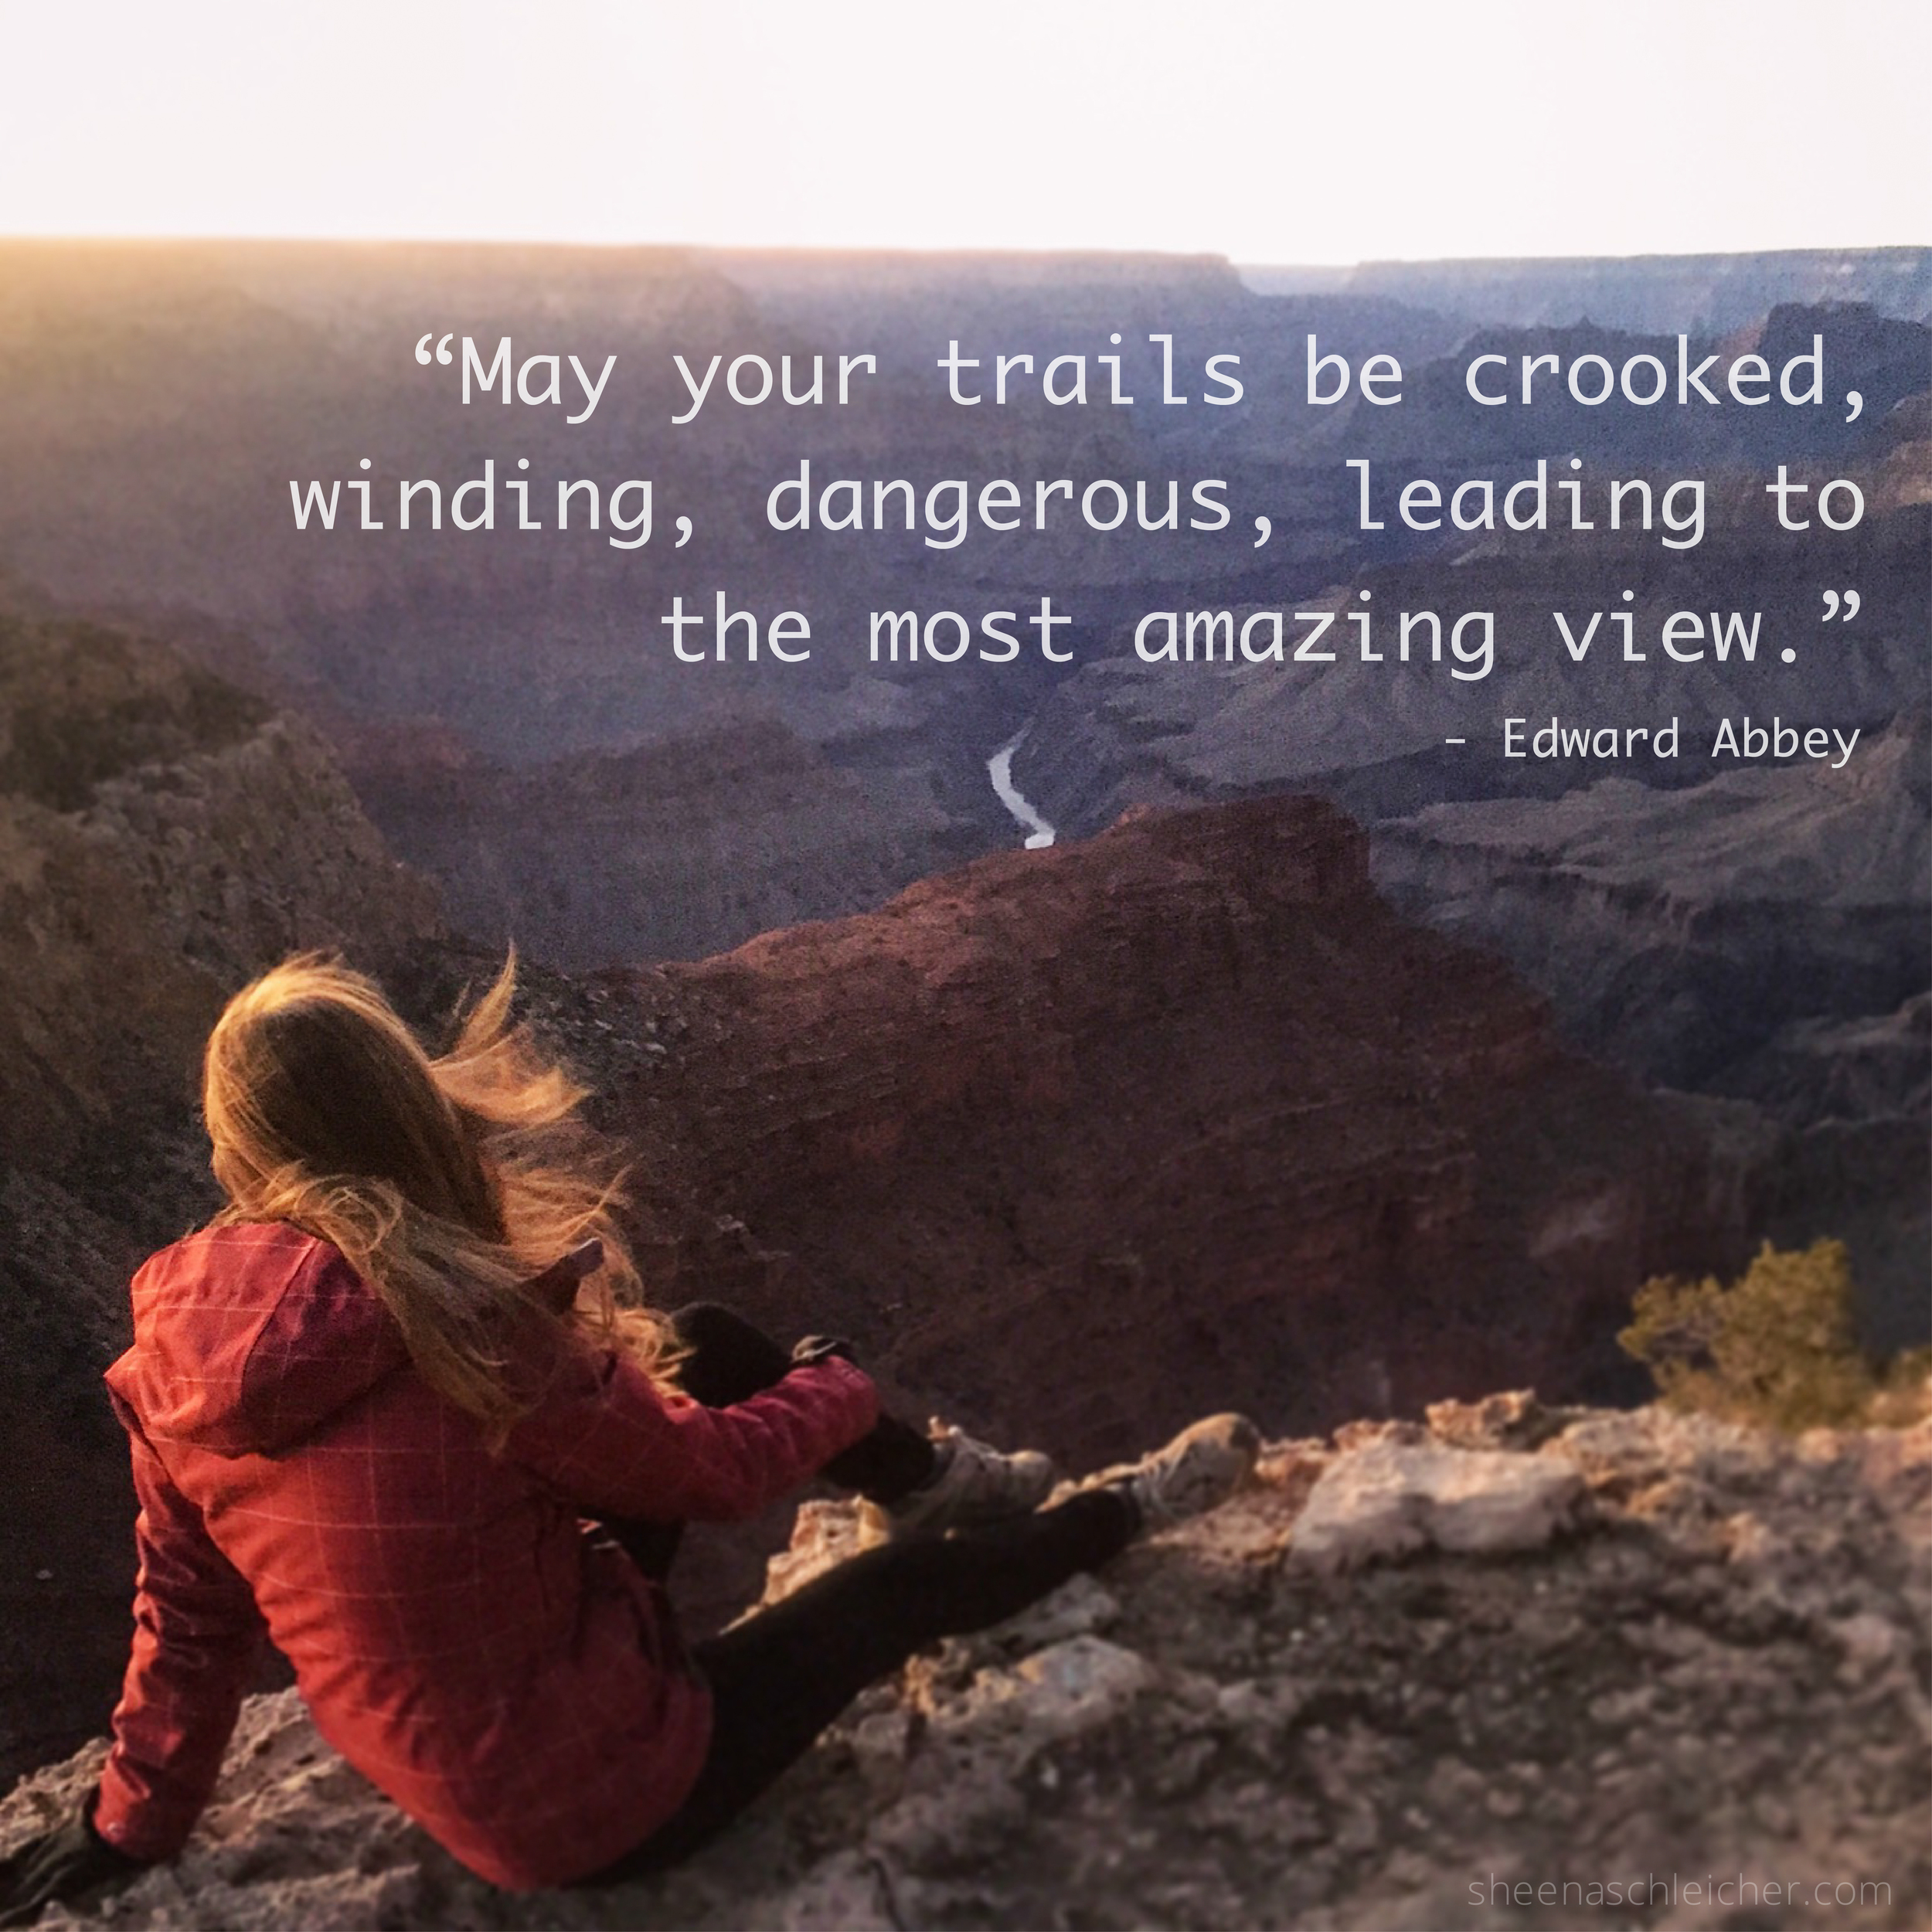 May your trails be crooked, winding, dangerous, leading to the most amazing view. #life #quote #adventure